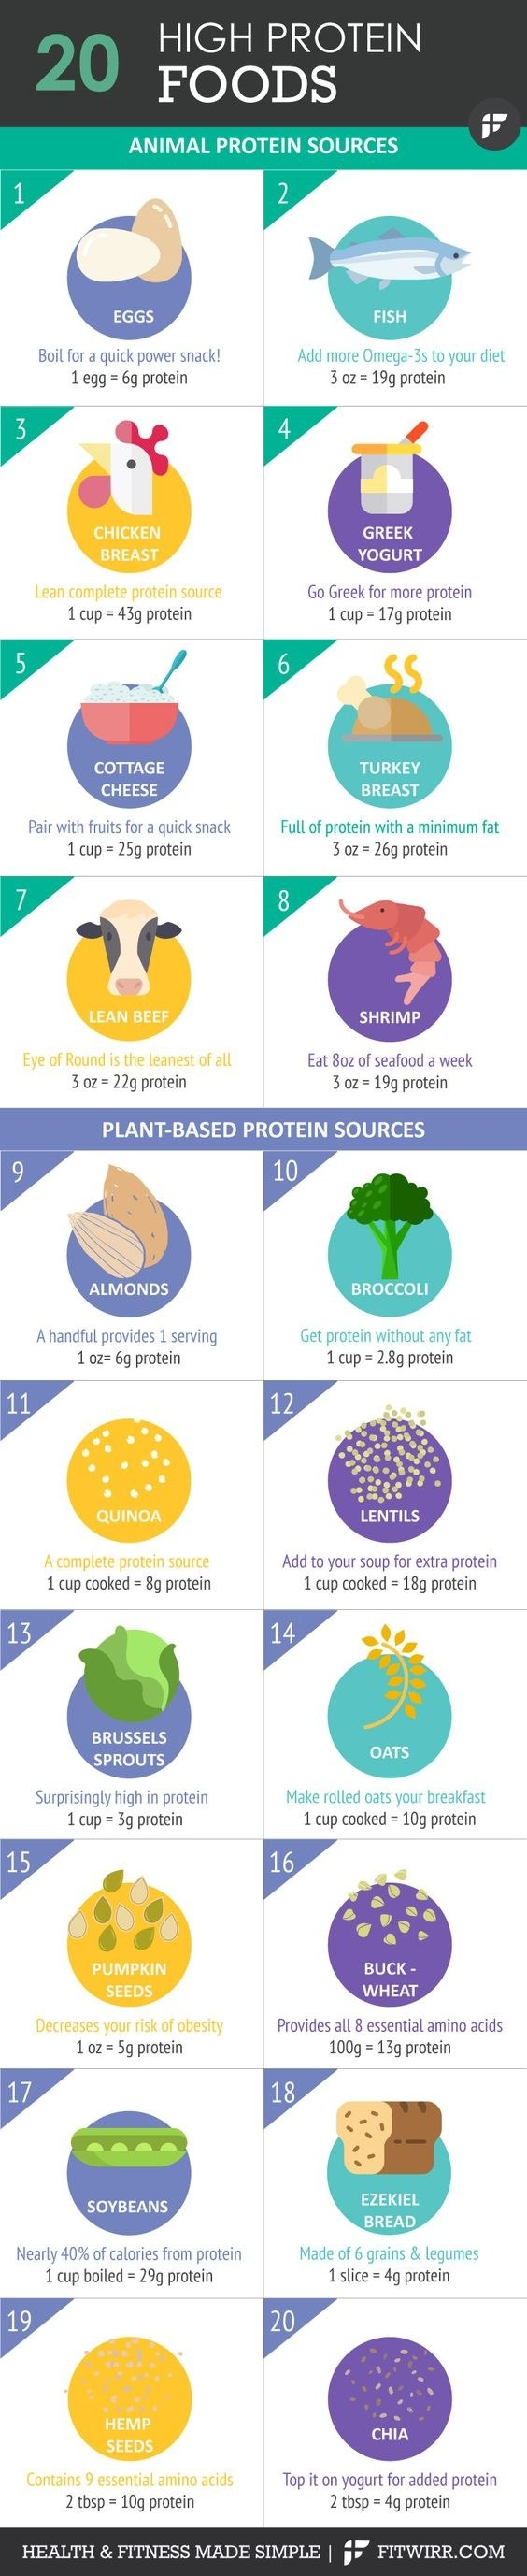 High Protein Foods For Getting Ripped